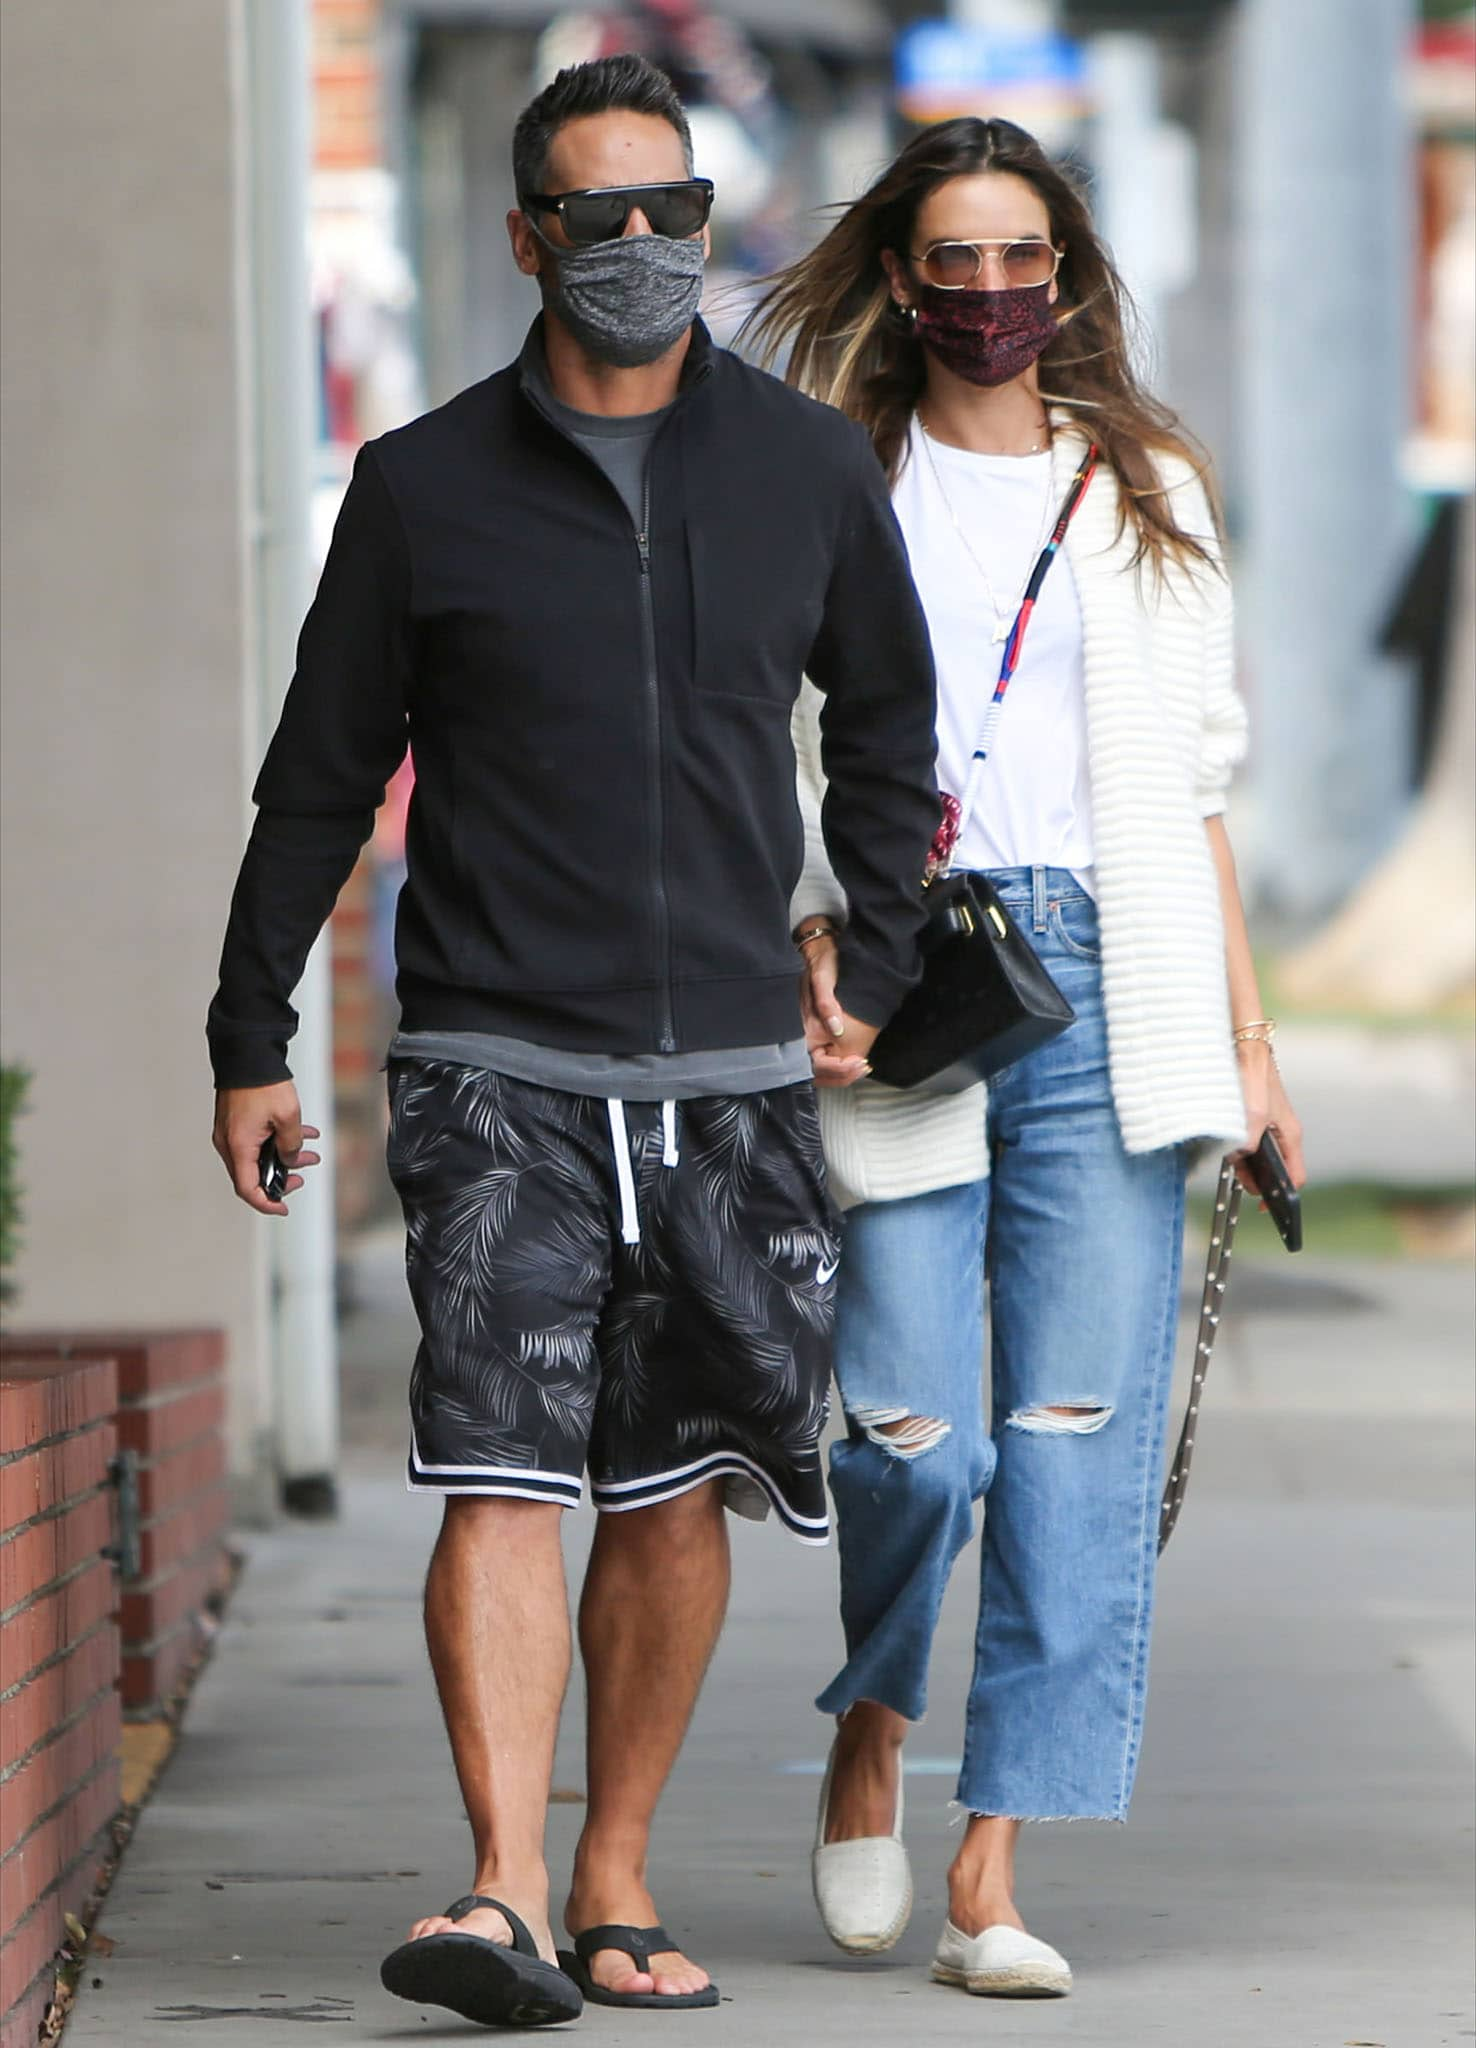 Richard Lee and girlfriend Alessandra Ambrosio hold hands while on a stroll in Los Angeles on April 21, 2021